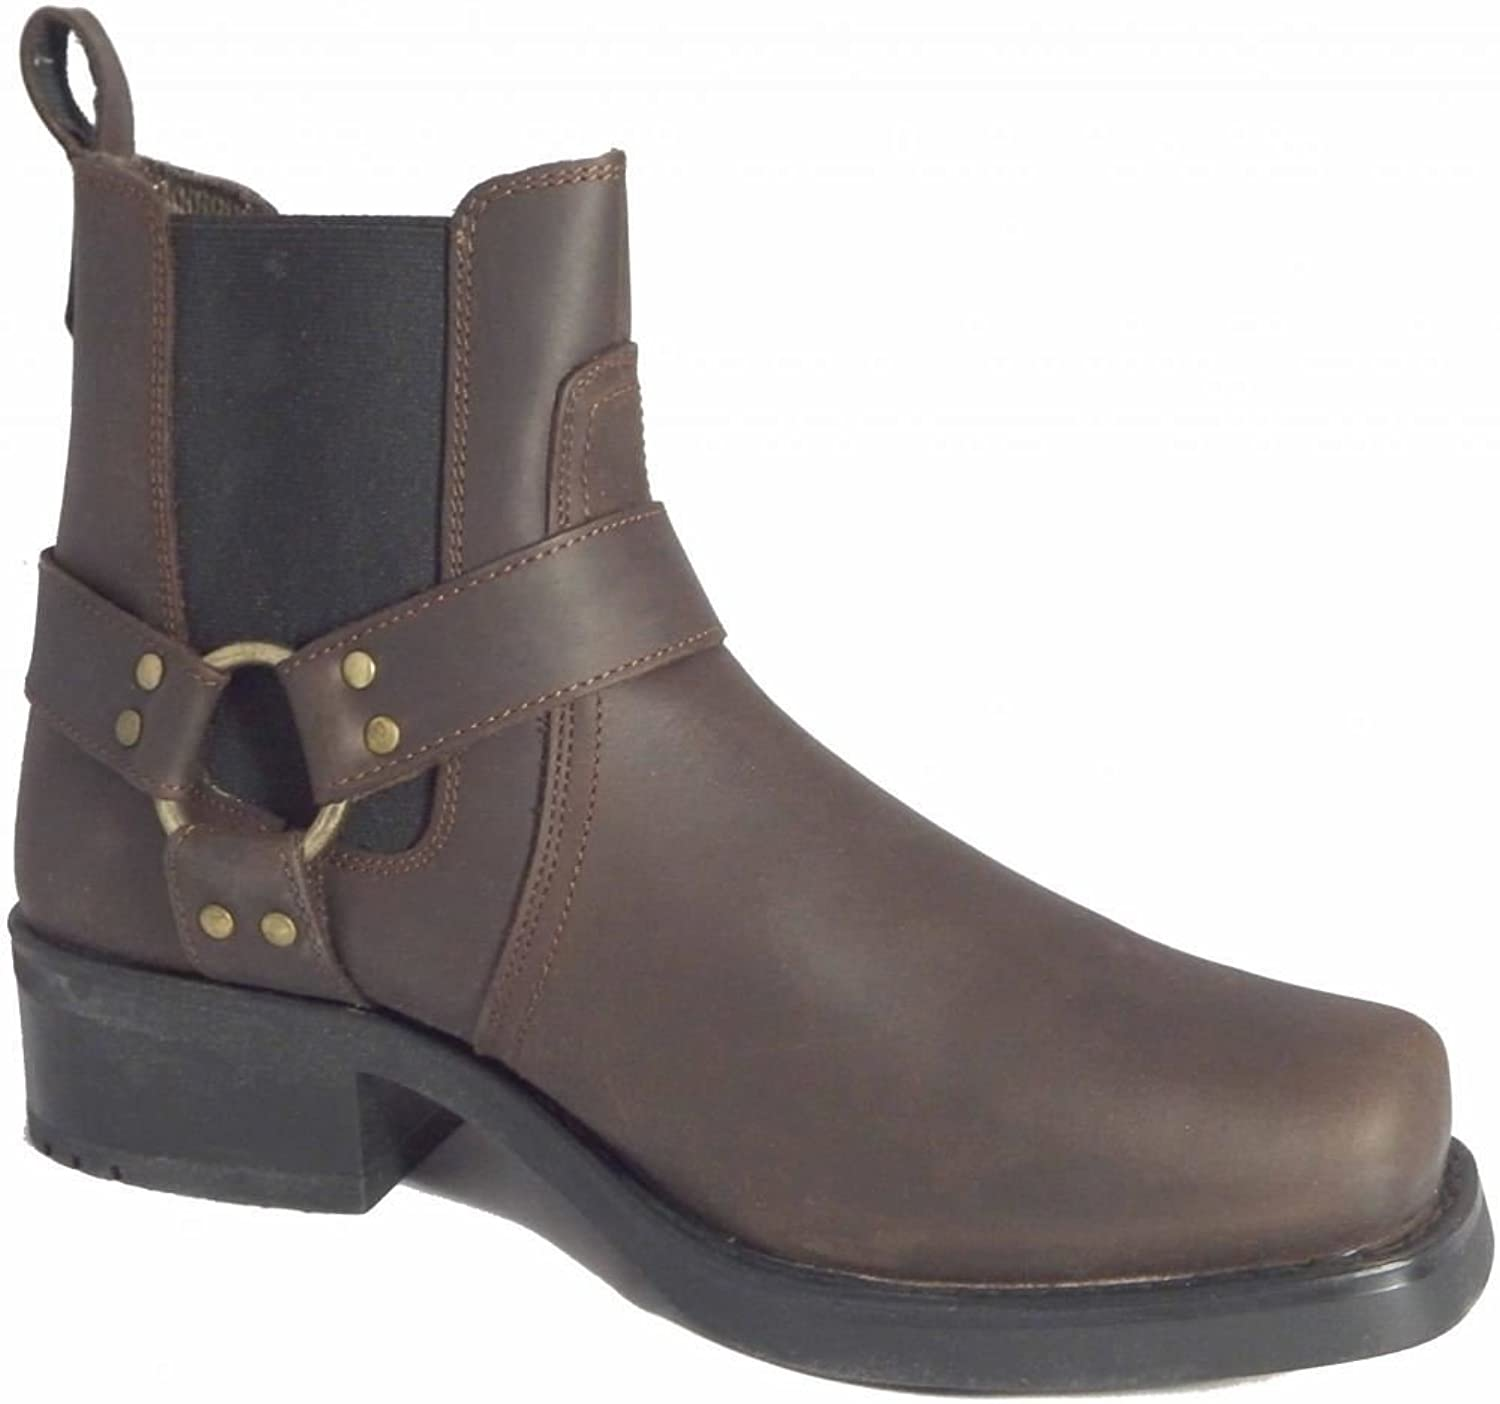 GRINGOS 'LOW HARLEY' Gusset Harness Boots